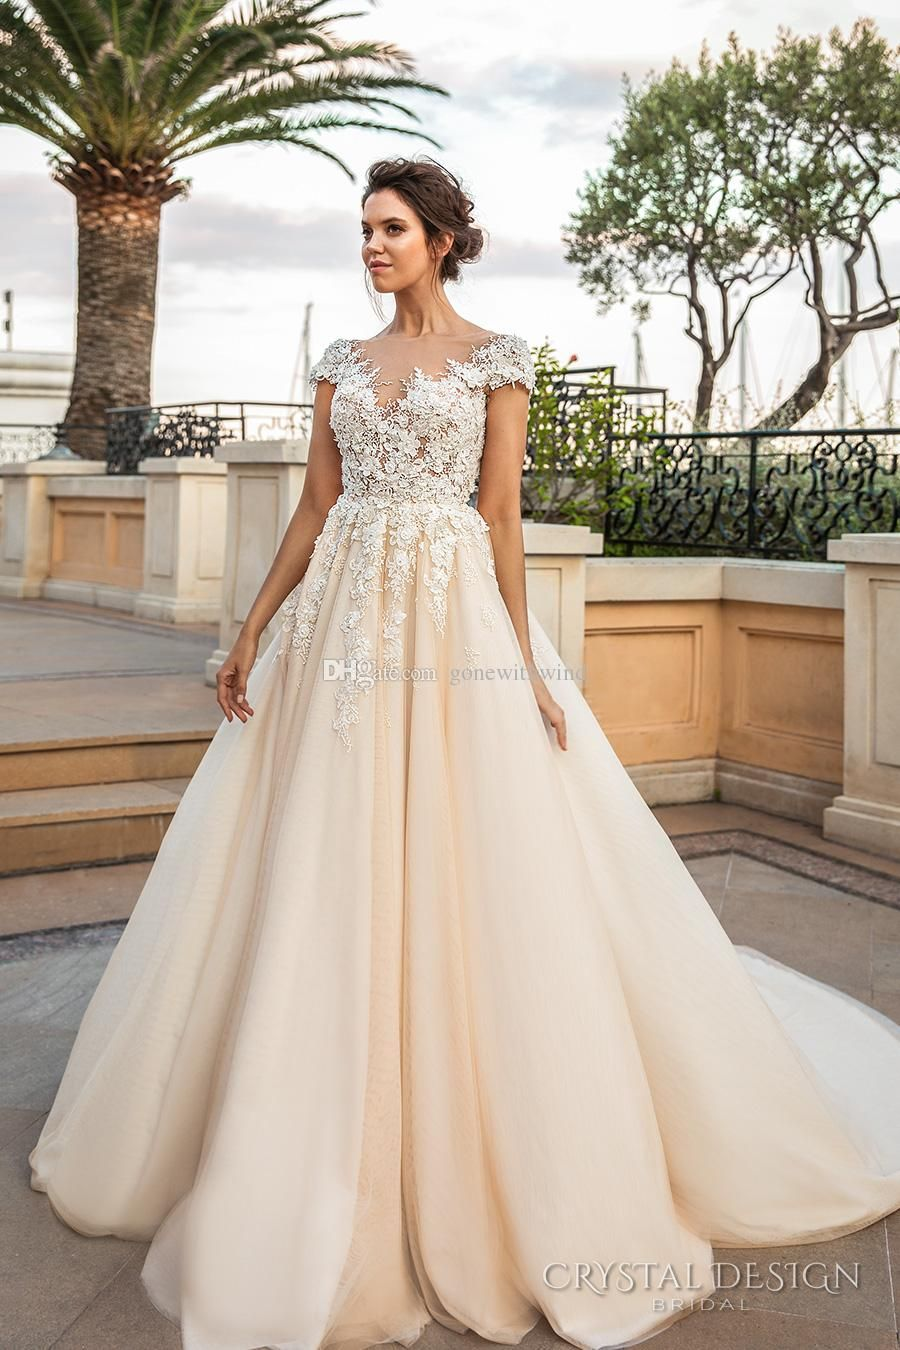 Wholesale Bridal Wear Brides Dresses And Cheap Wedding Dresses Uk